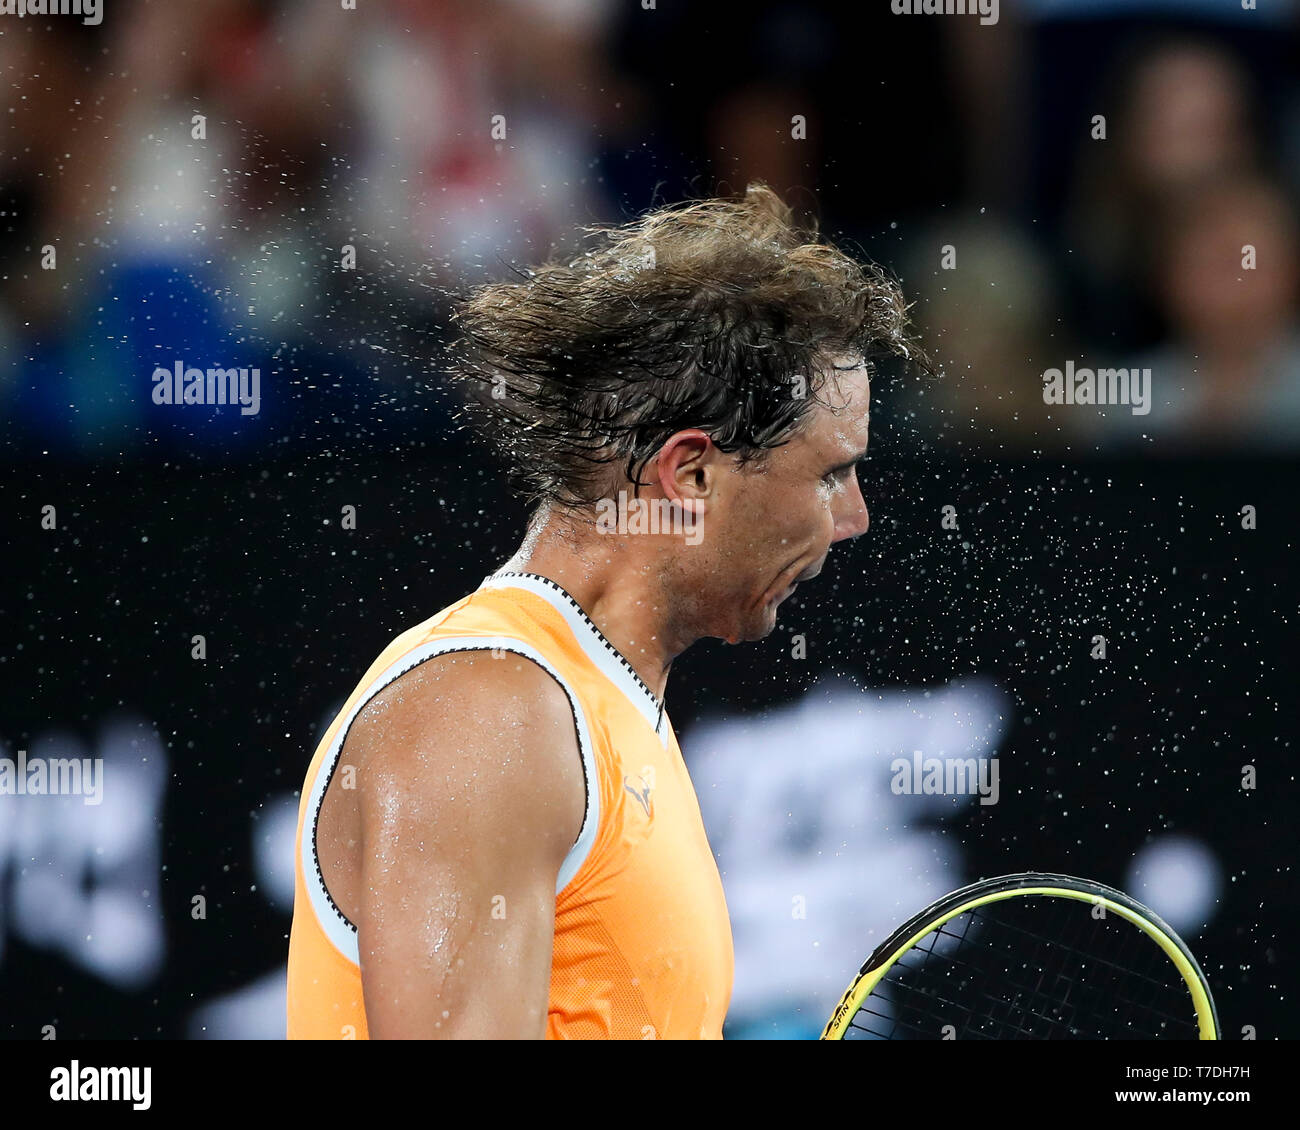 Spanish tennis player Rafael Nadal after winning his match at the Australian Open 2019 tennis tournament, Melbourne Park, Melbourne, Victoria, Austral - Stock Image